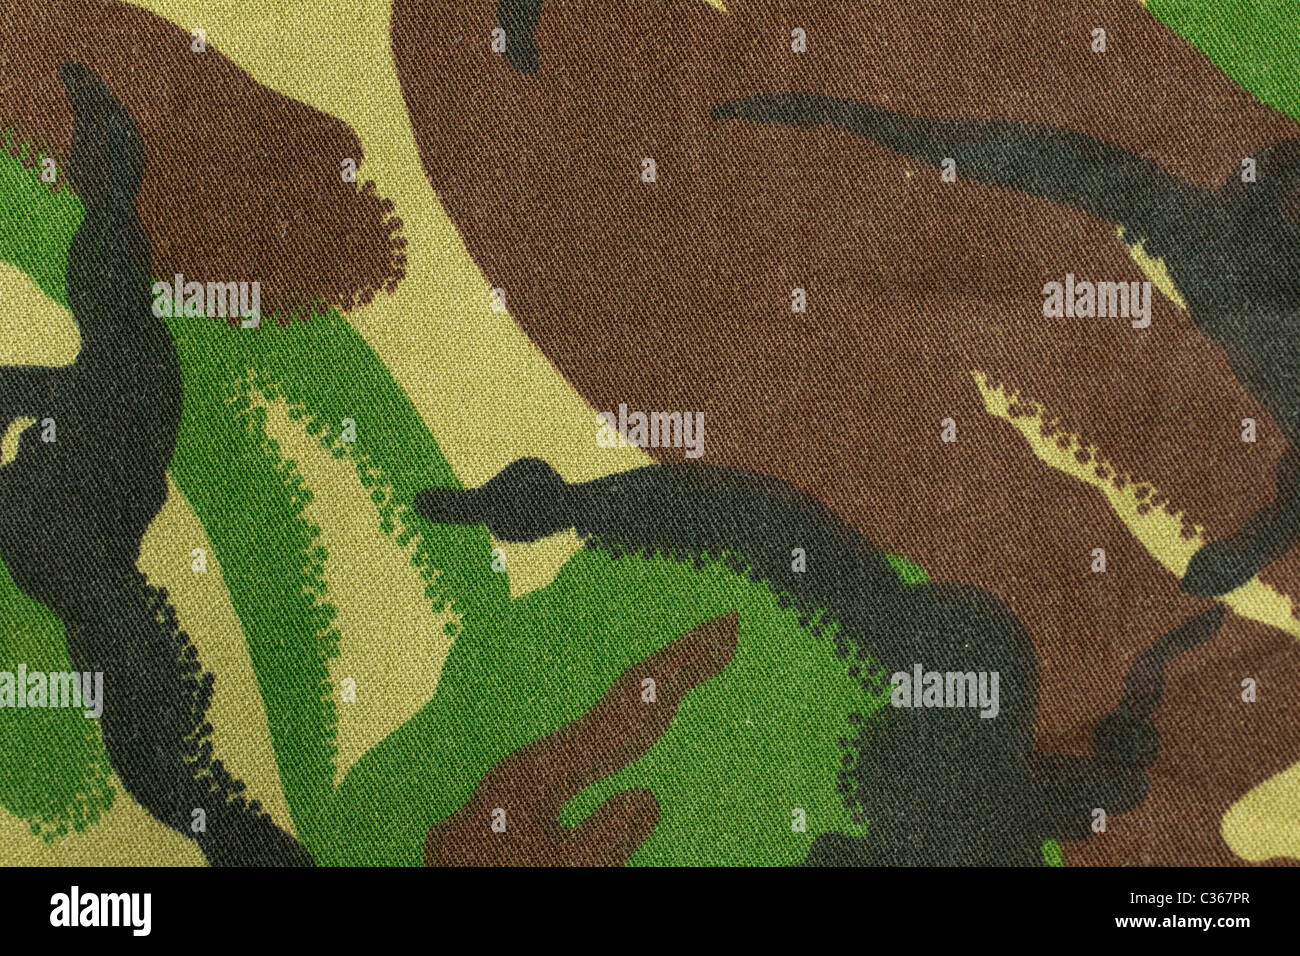 A regular camo pattern suitable for a background - Stock Image